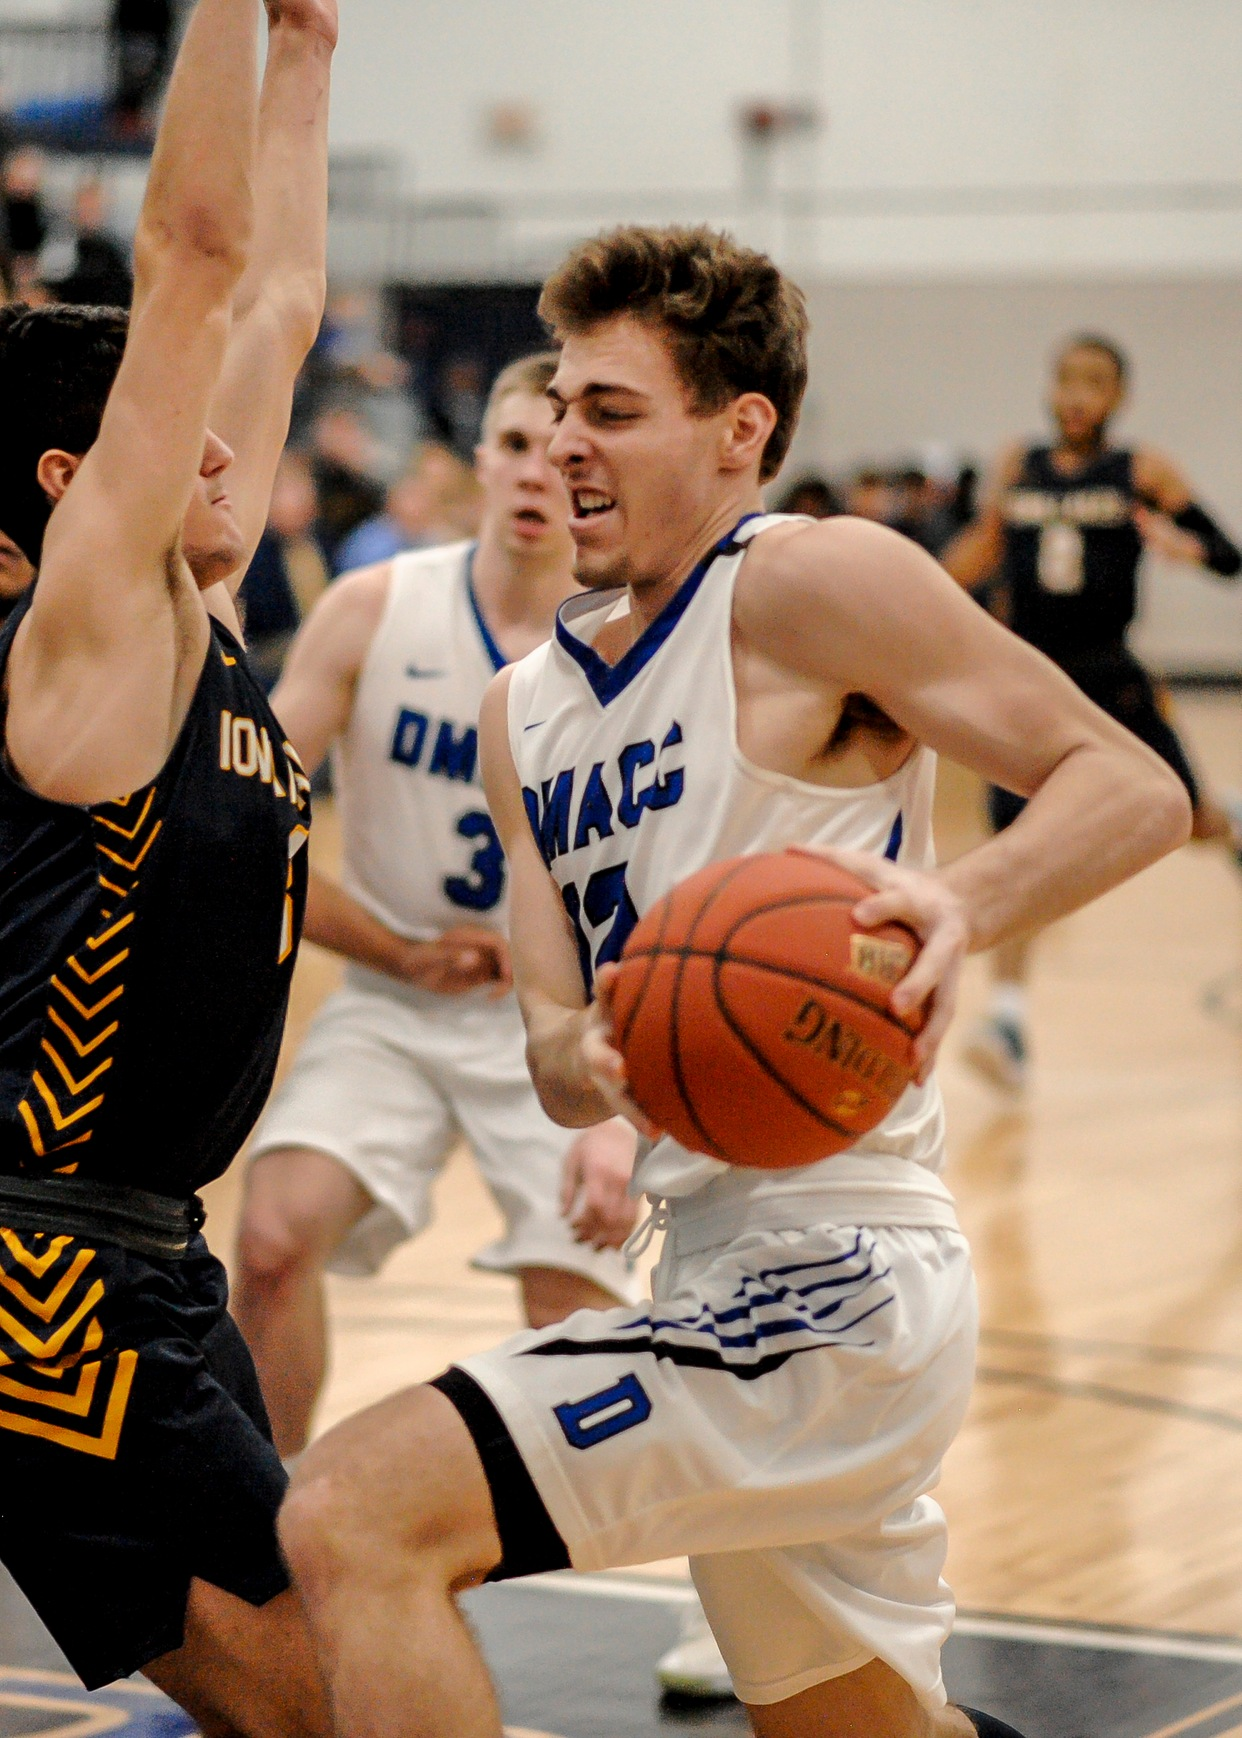 DMACC men's basketball team tops ILCC in regional semifinals; faces NIACC in championship game